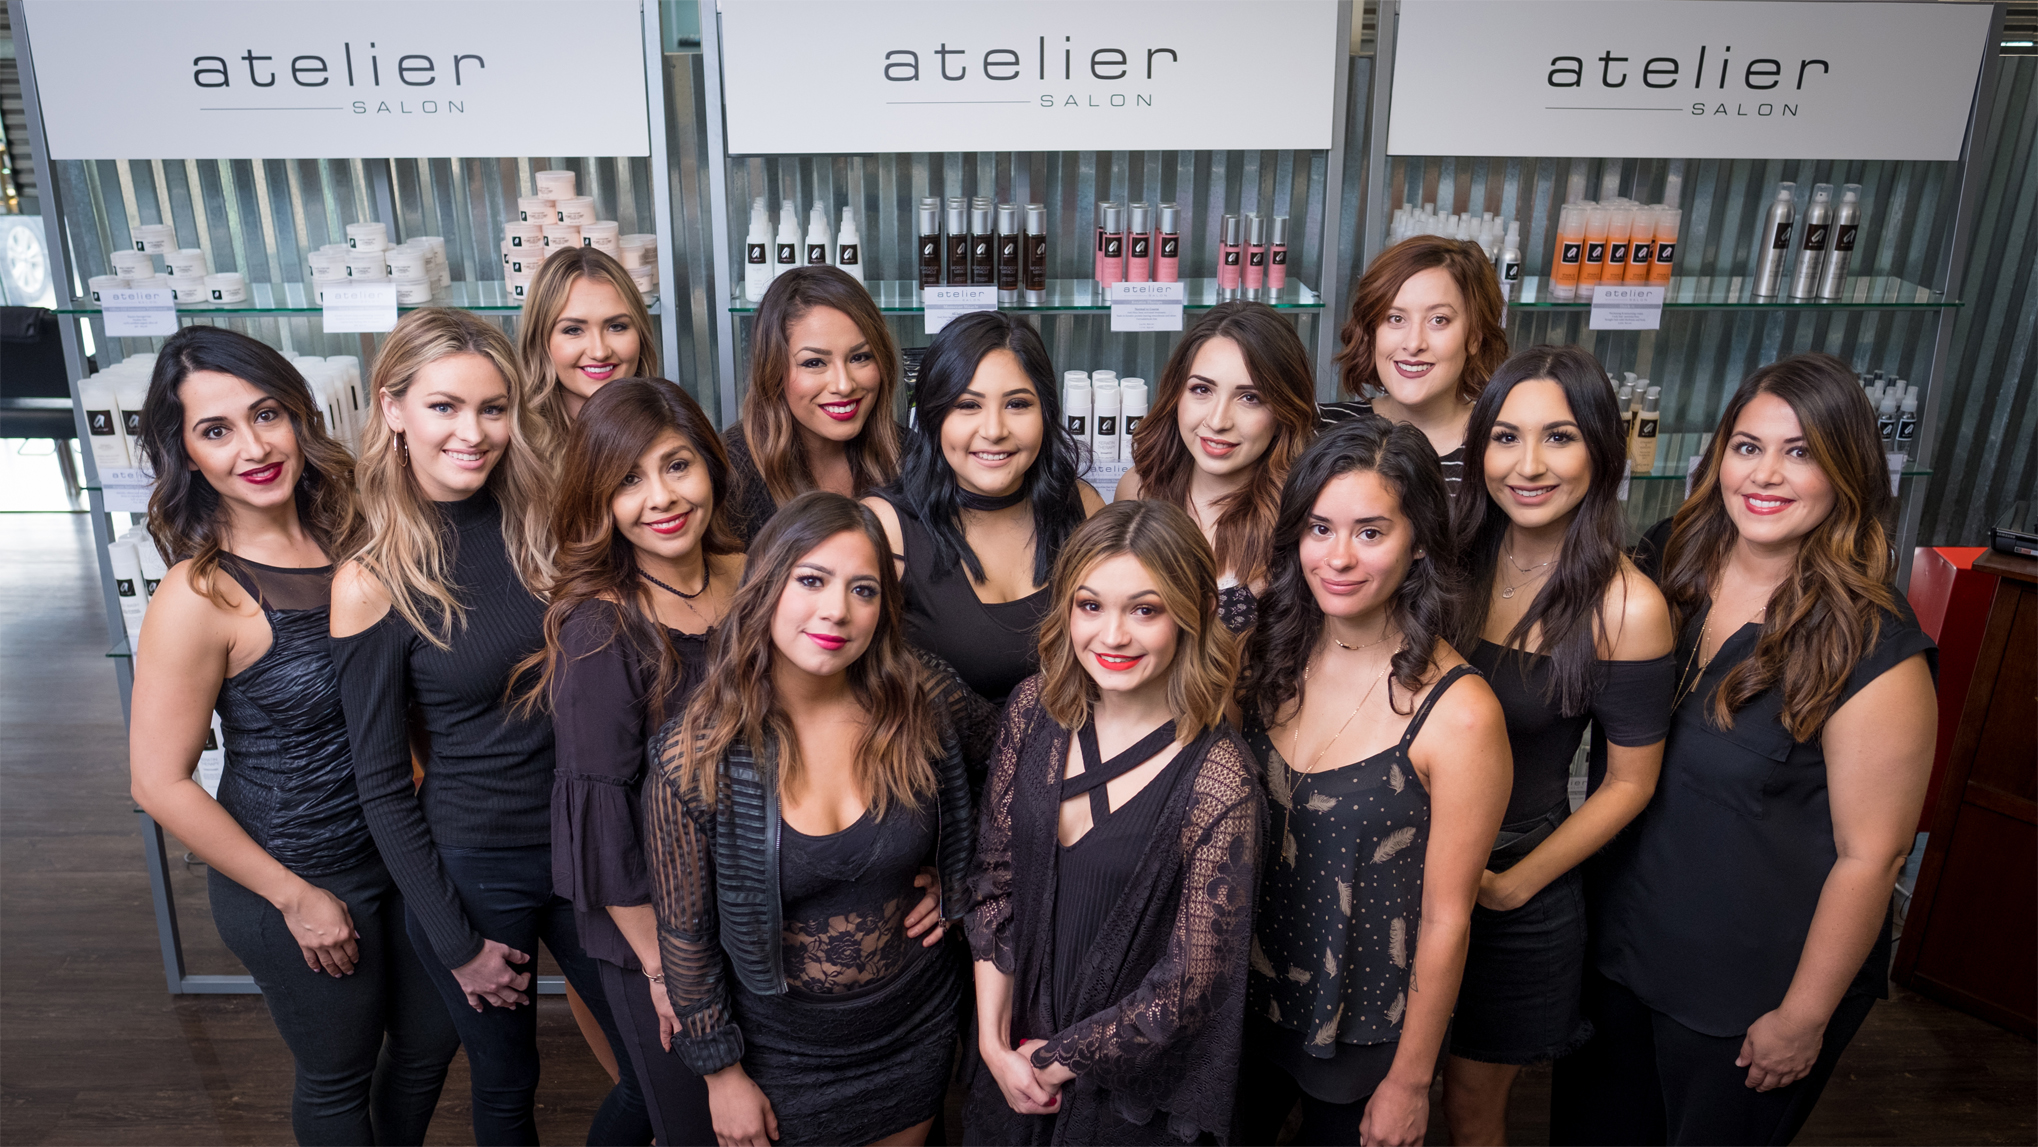 About Atelier Salon Corpus Christi Beauty Salon Hair Salon